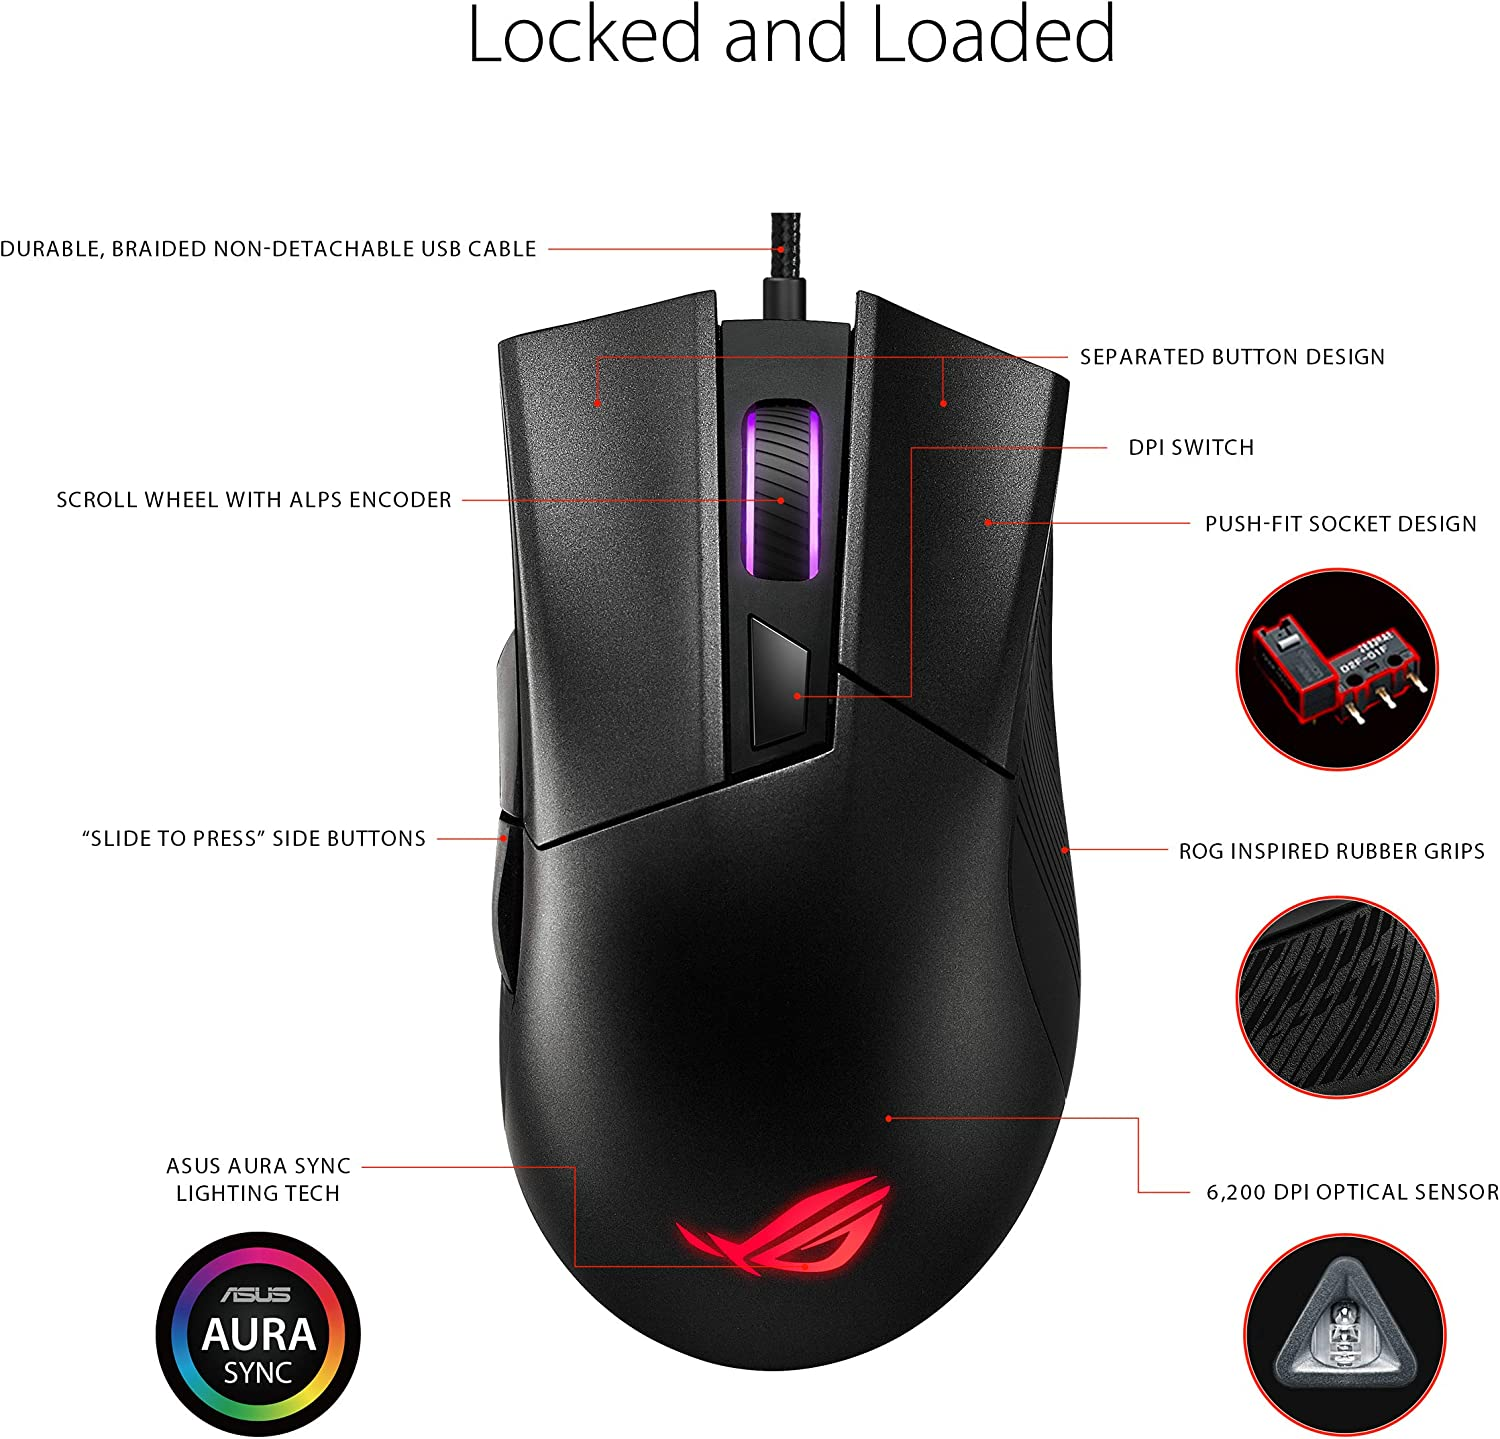 ASUS Optical Gaming Mouse - ROG Gladius II Core   Ergonomic Right-Hand Grip   Lightweight PC Gaming Mouse   6200 DPI Optical Sensor   Omron Switches   6 Buttons   Aura Sync RGB Lighting: Computers & Accessories